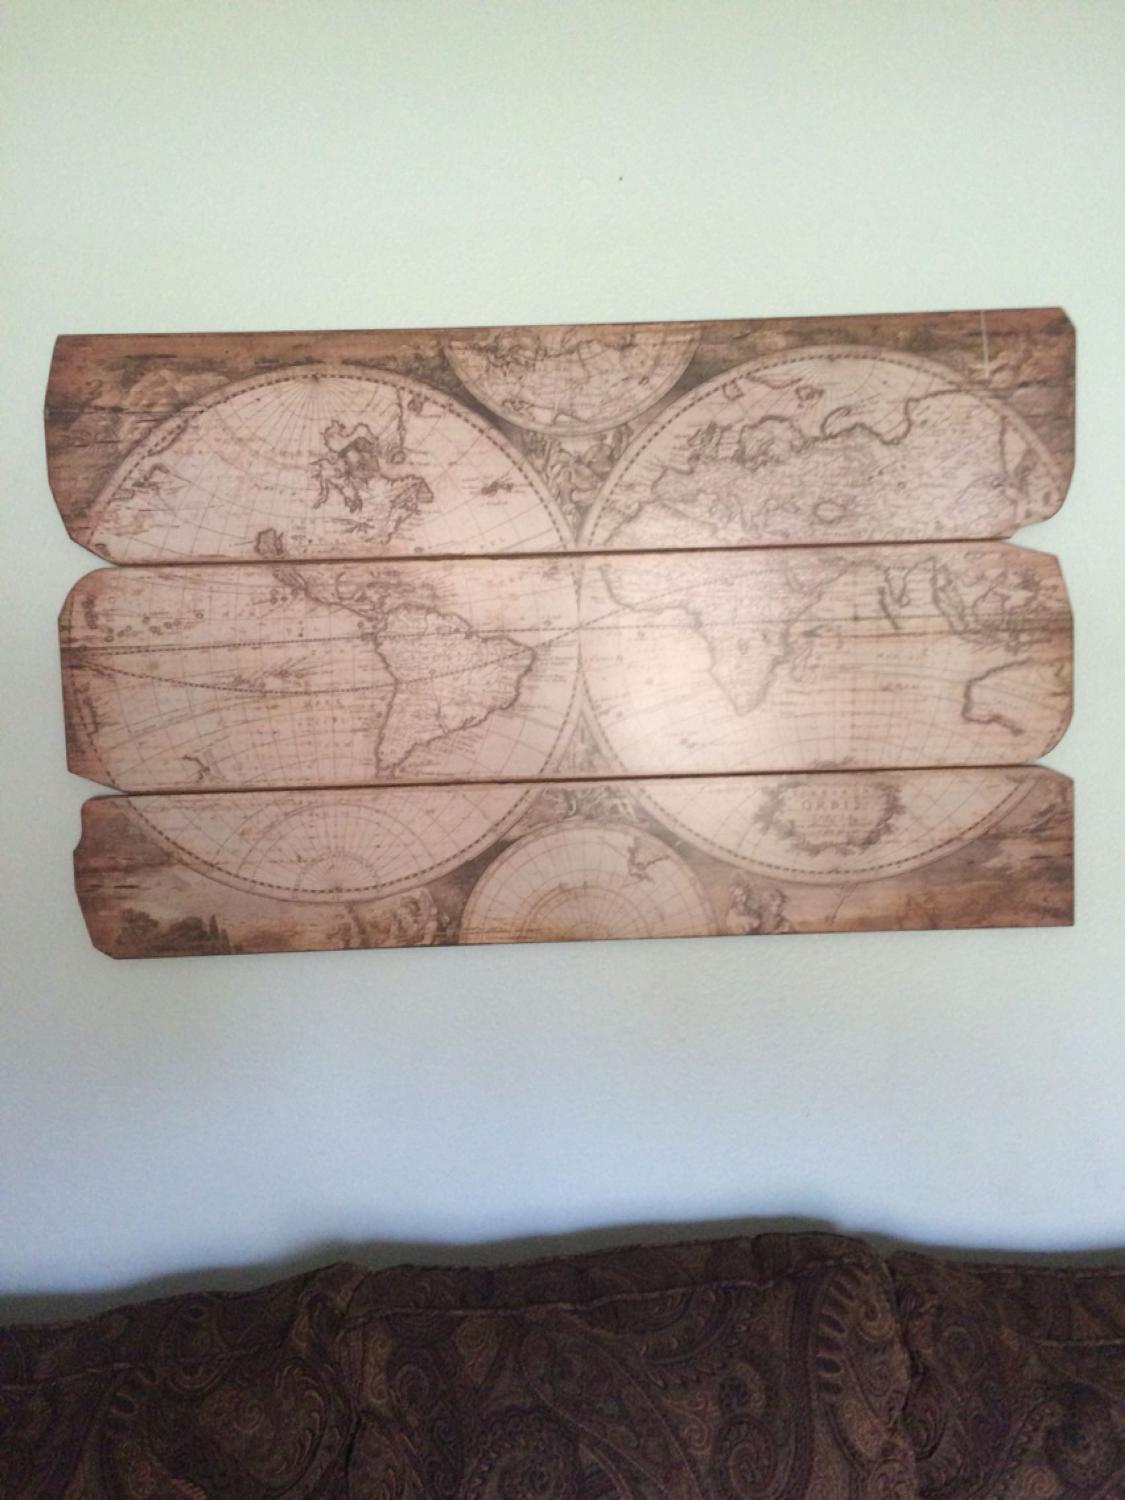 Find more Unique Old World Map On Wood Planks for sale at up to 90% off